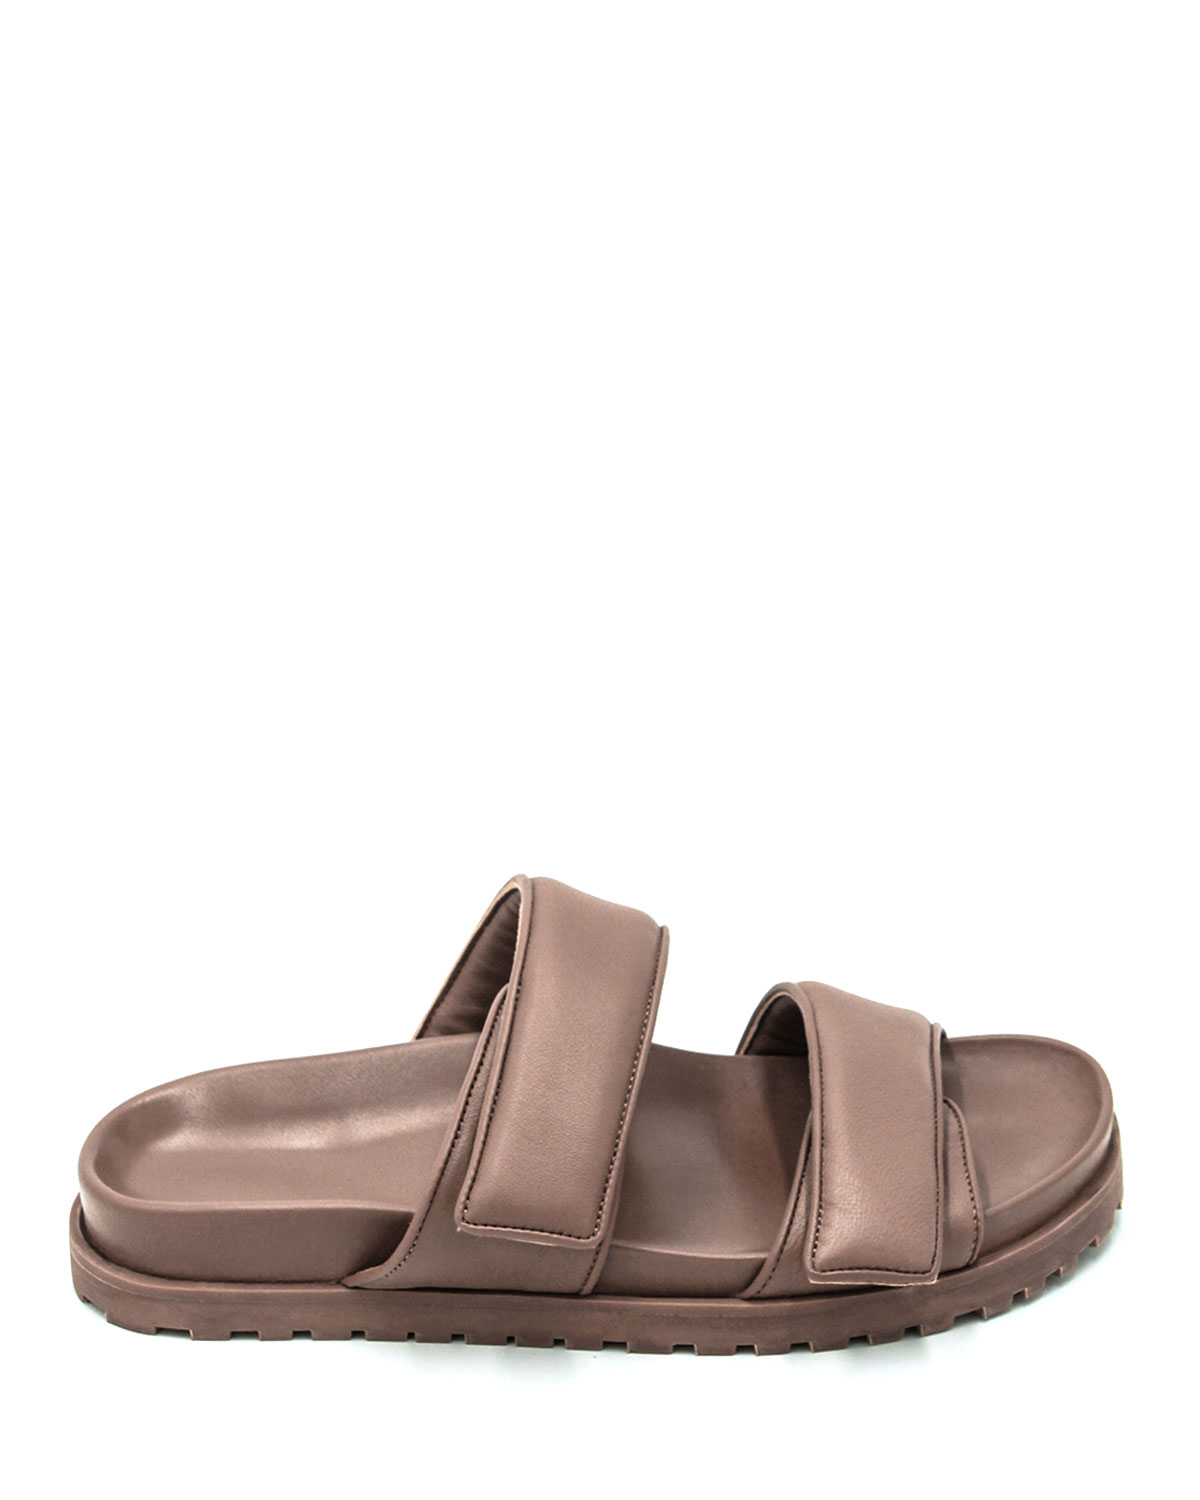 Napa Two Band Sporty Slide Sandals